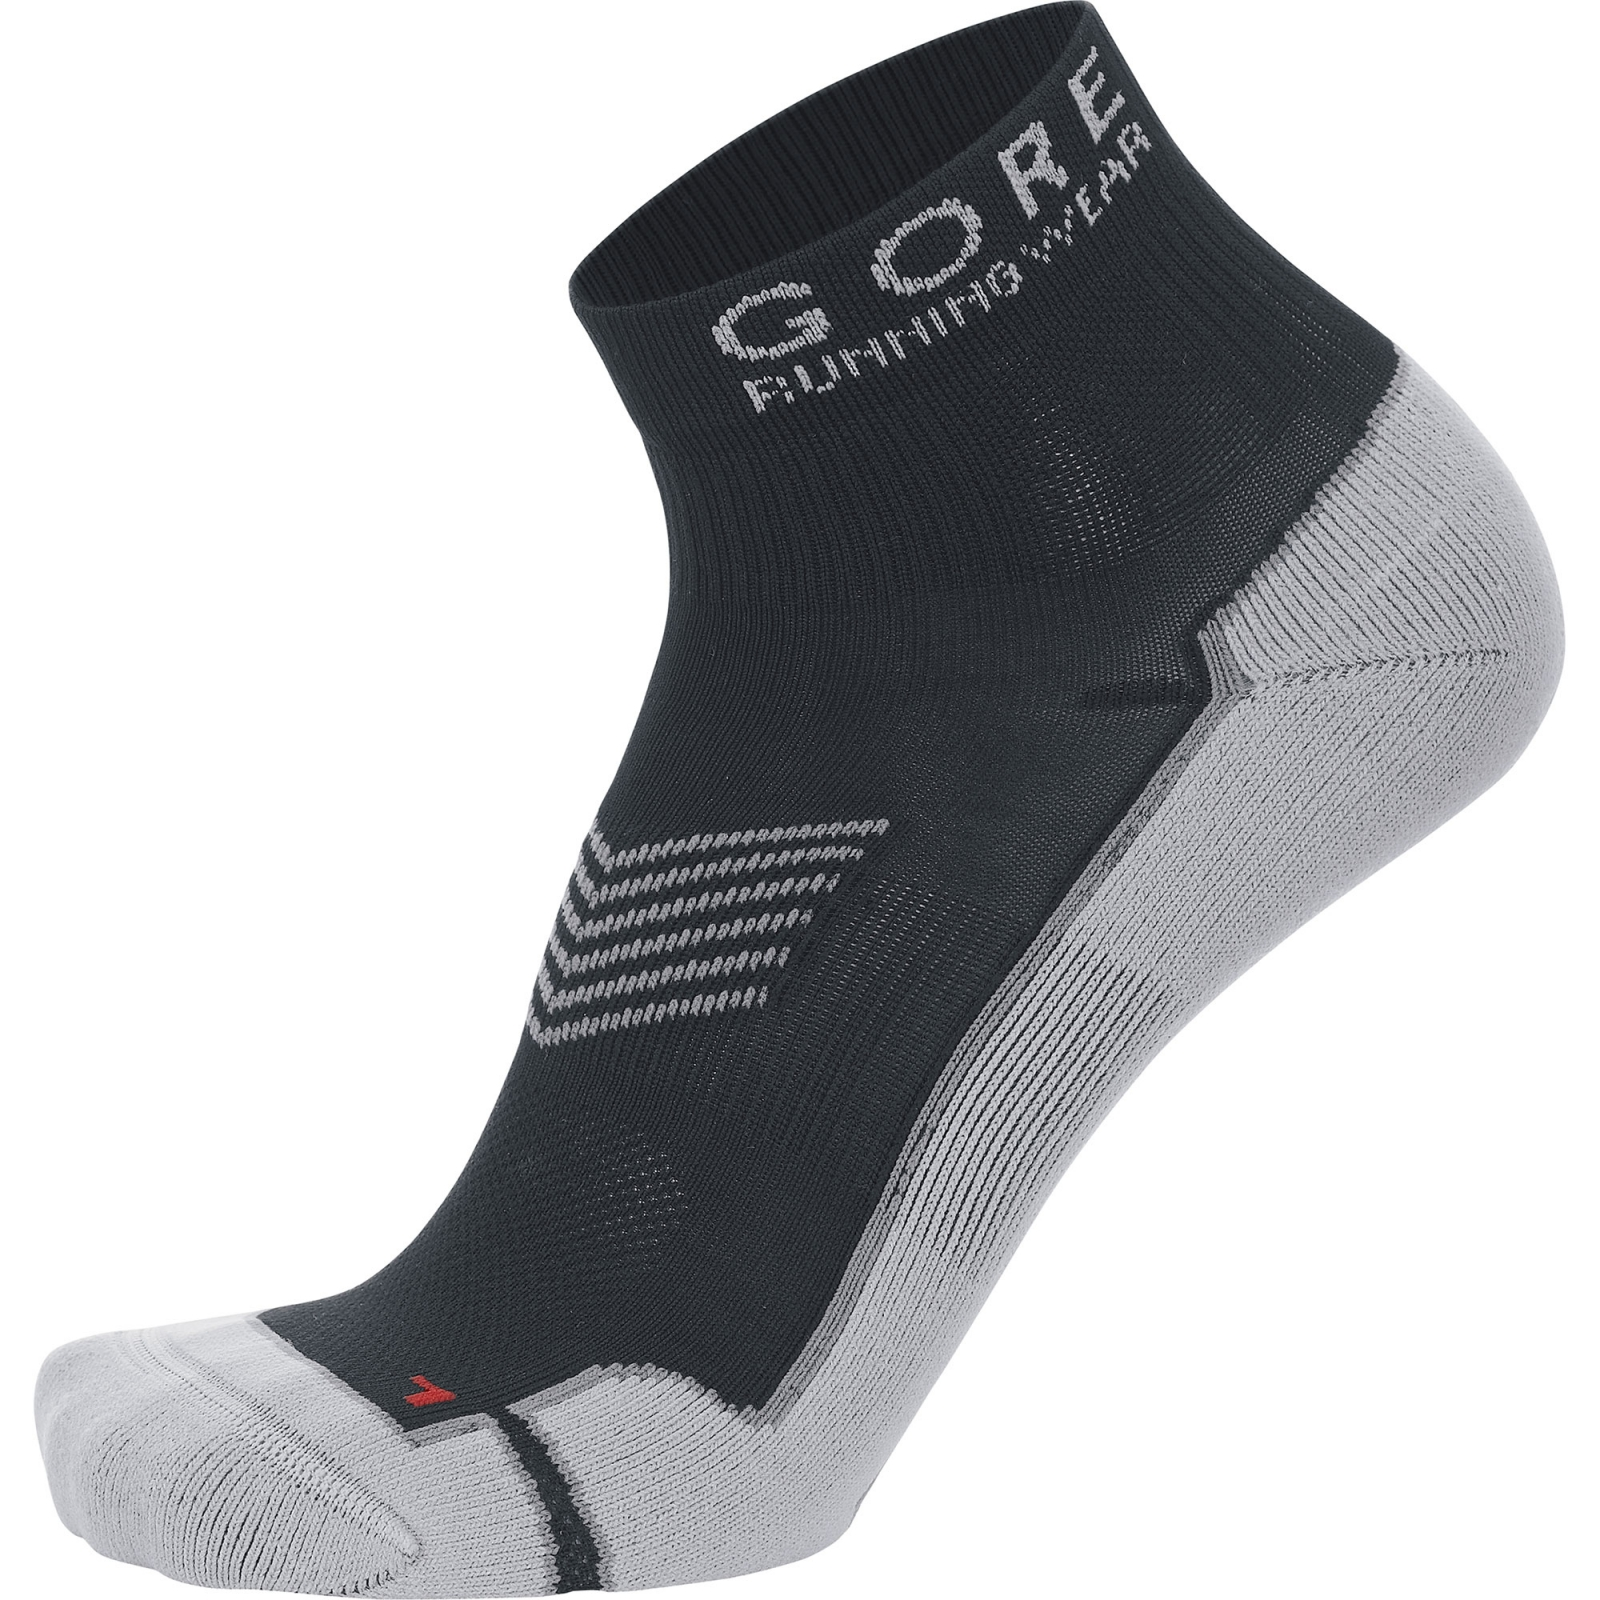 gore leg warmers size guide